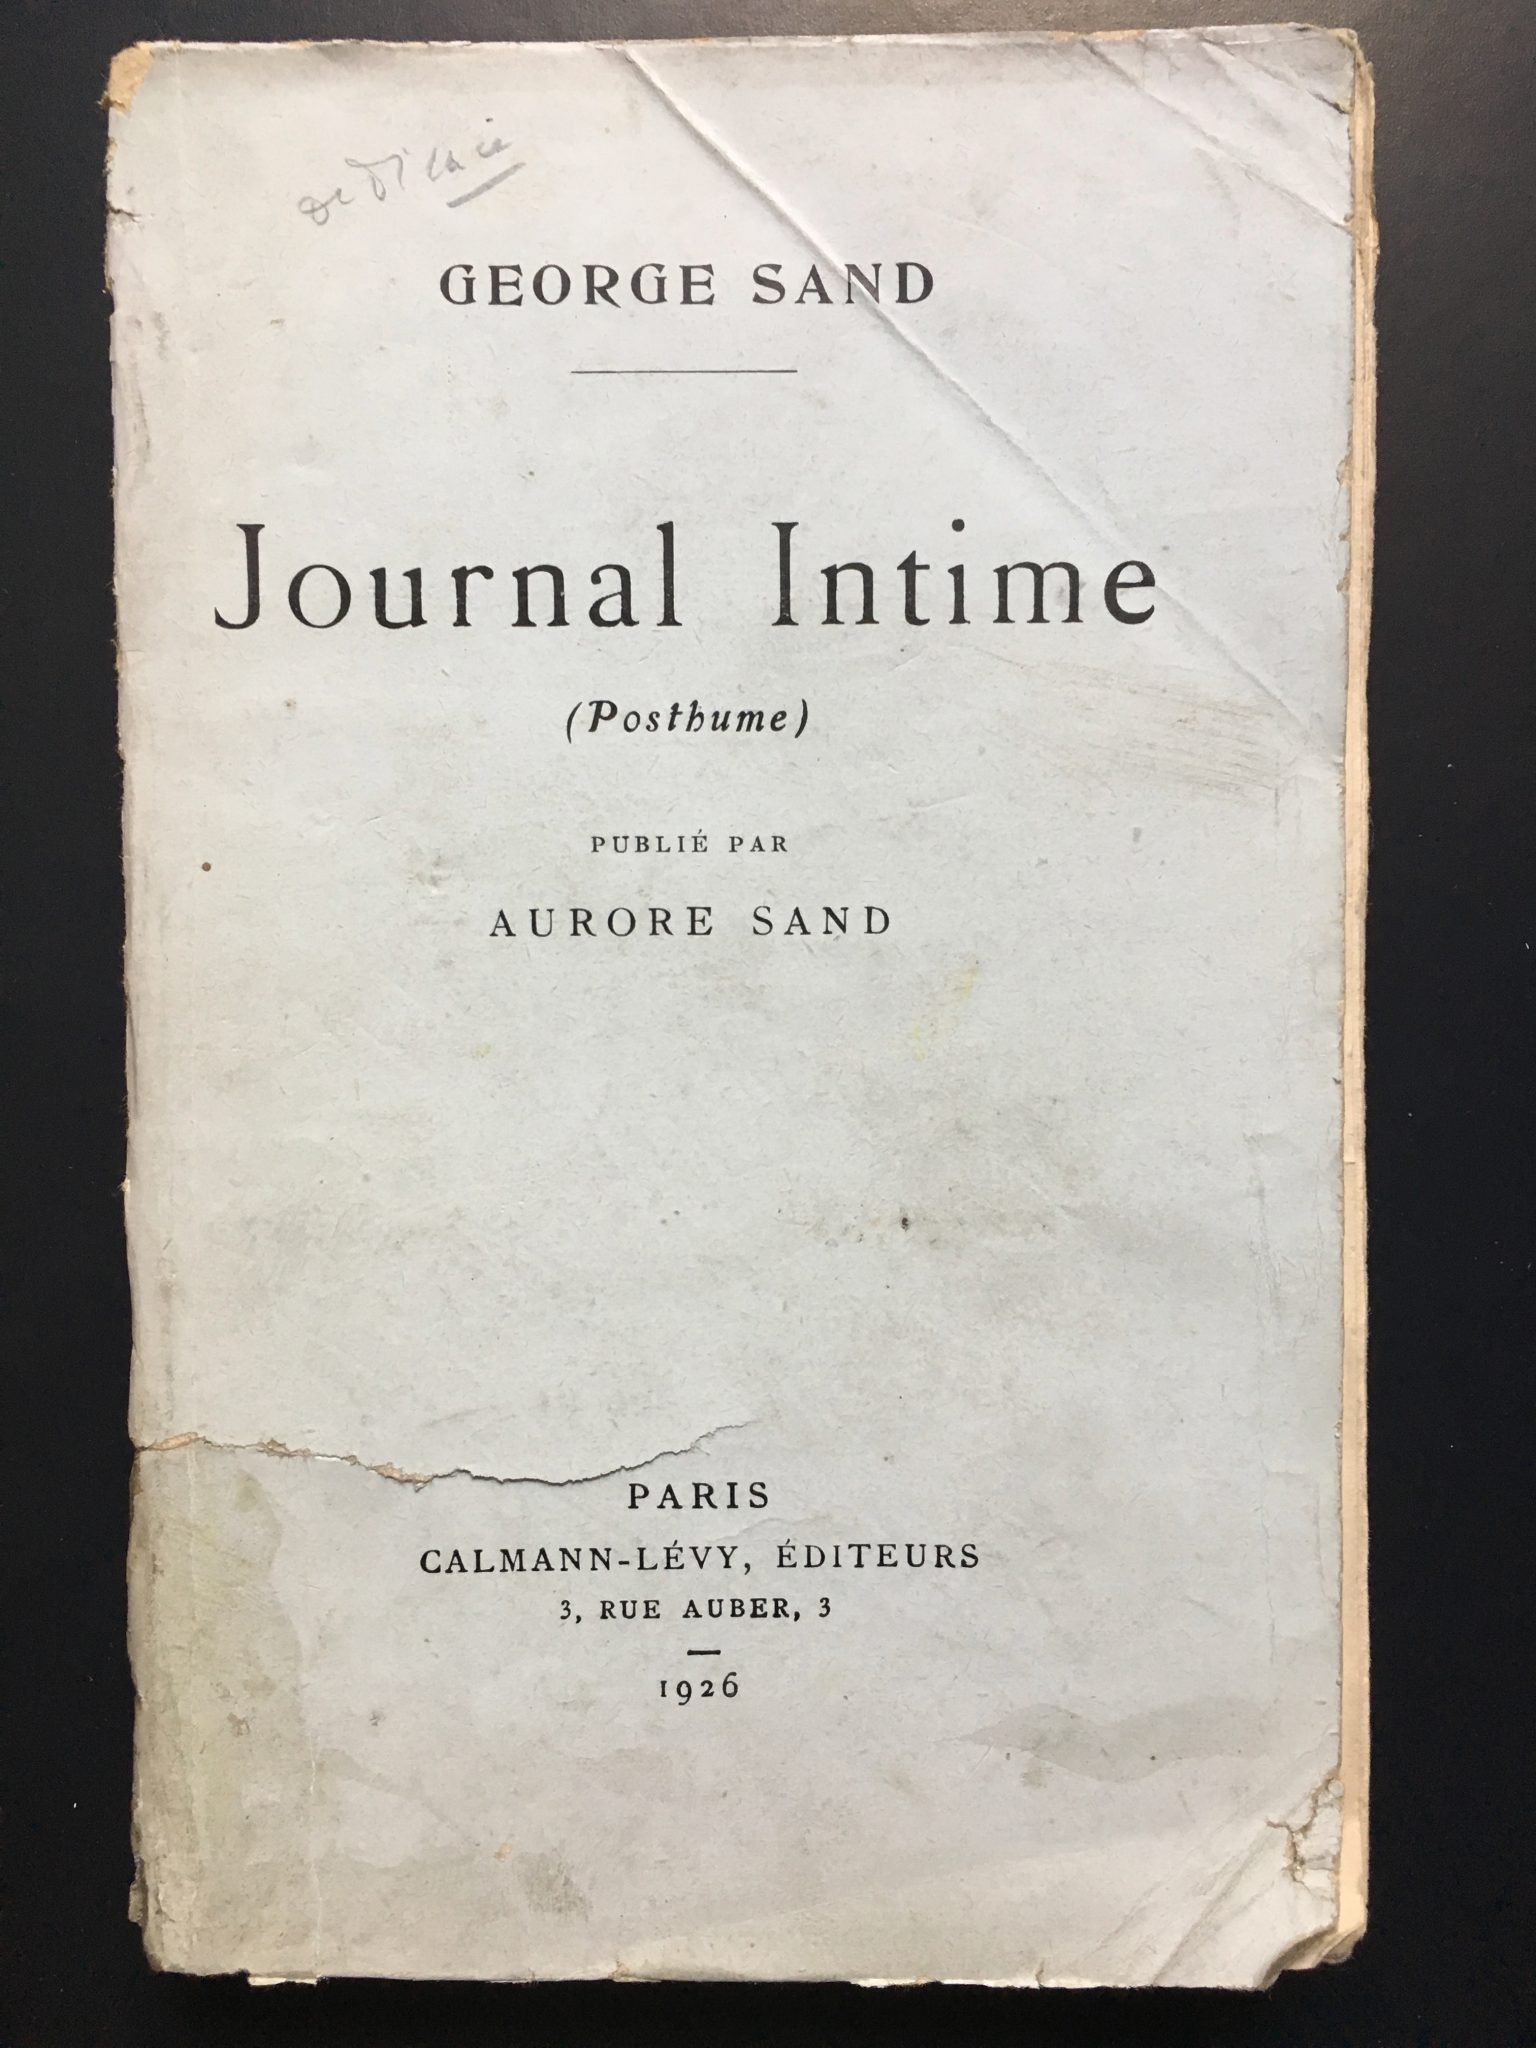 Journal-Intime sand